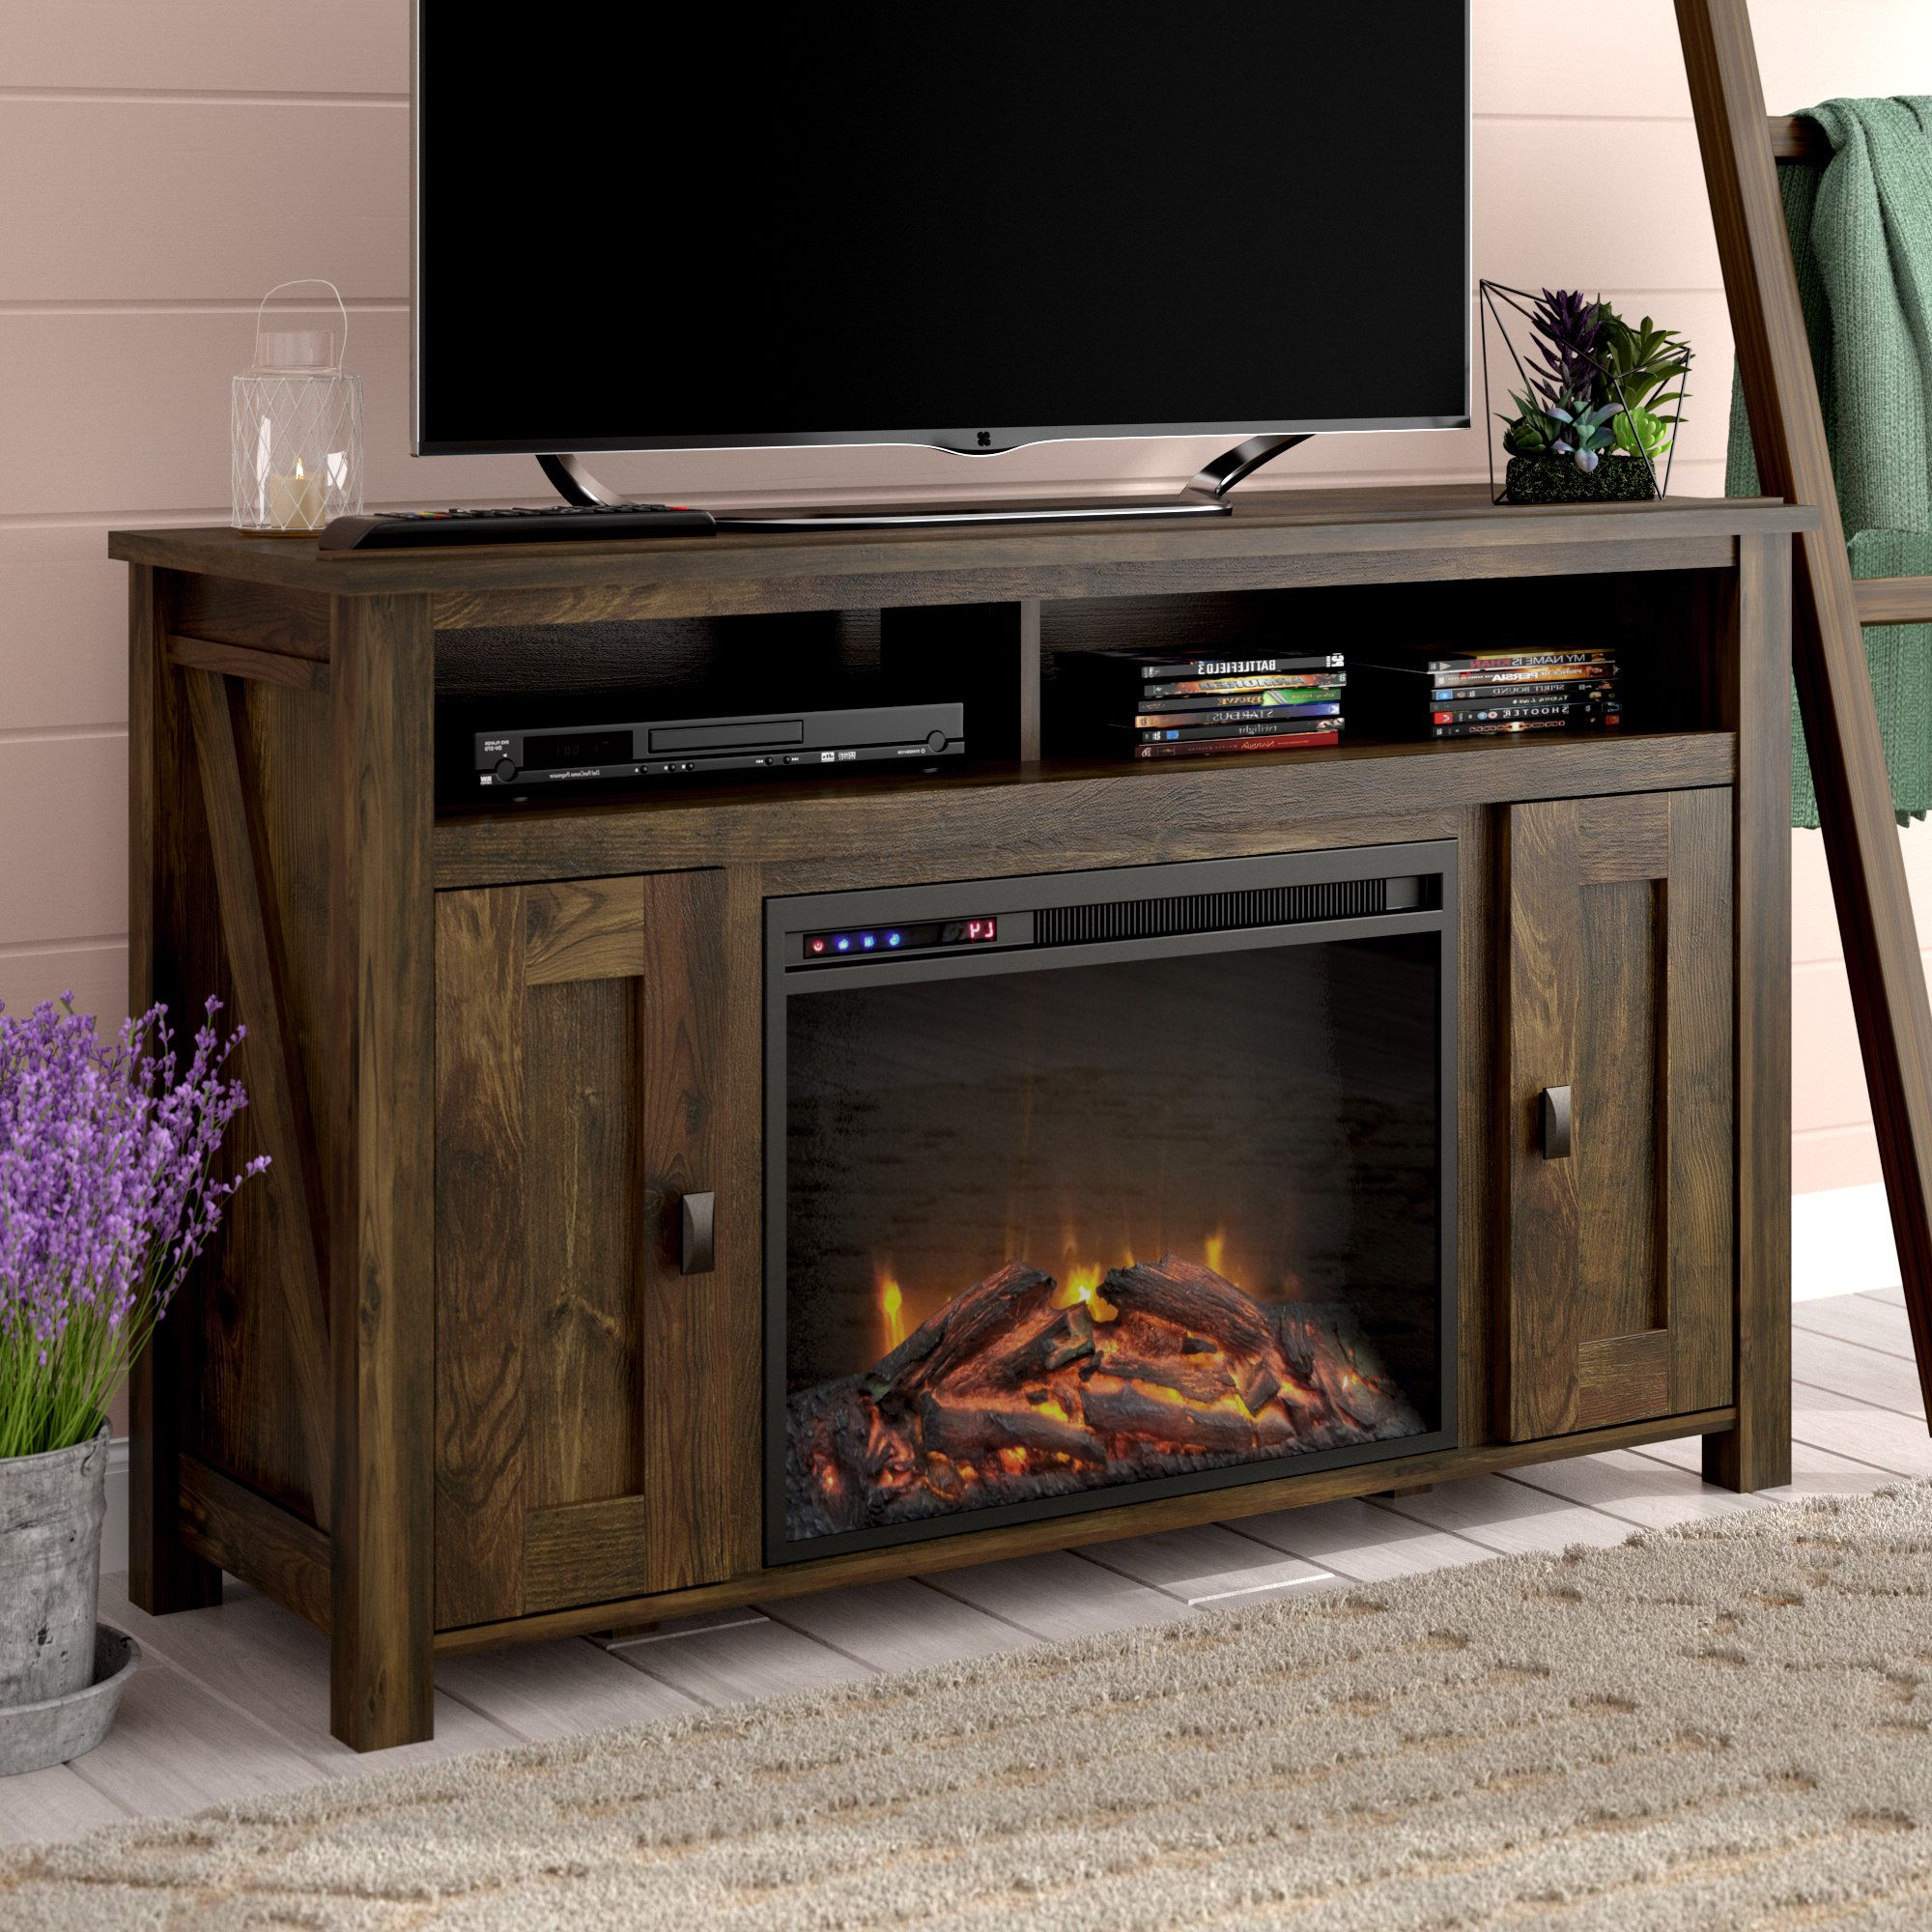 """Whittier Tv Stand For Tvs Up To 50"""" With Electric Regarding Allegra Tv Stands For Tvs Up To 50"""" (View 15 of 20)"""